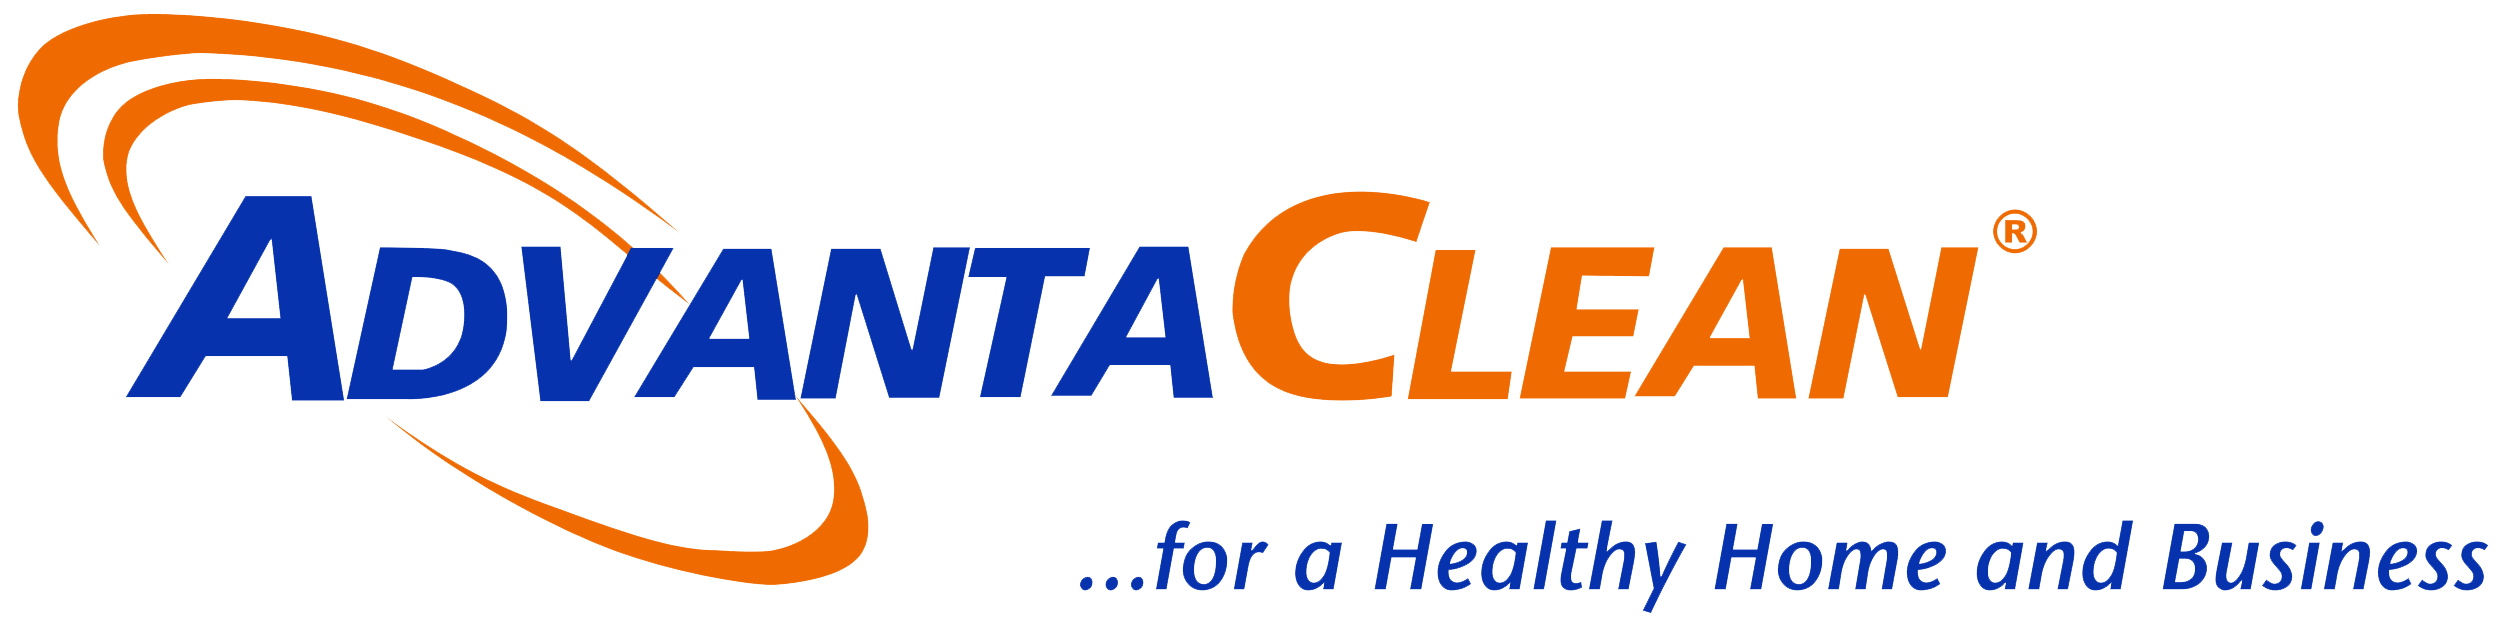 AdvantaClean-Logo-with-tagline